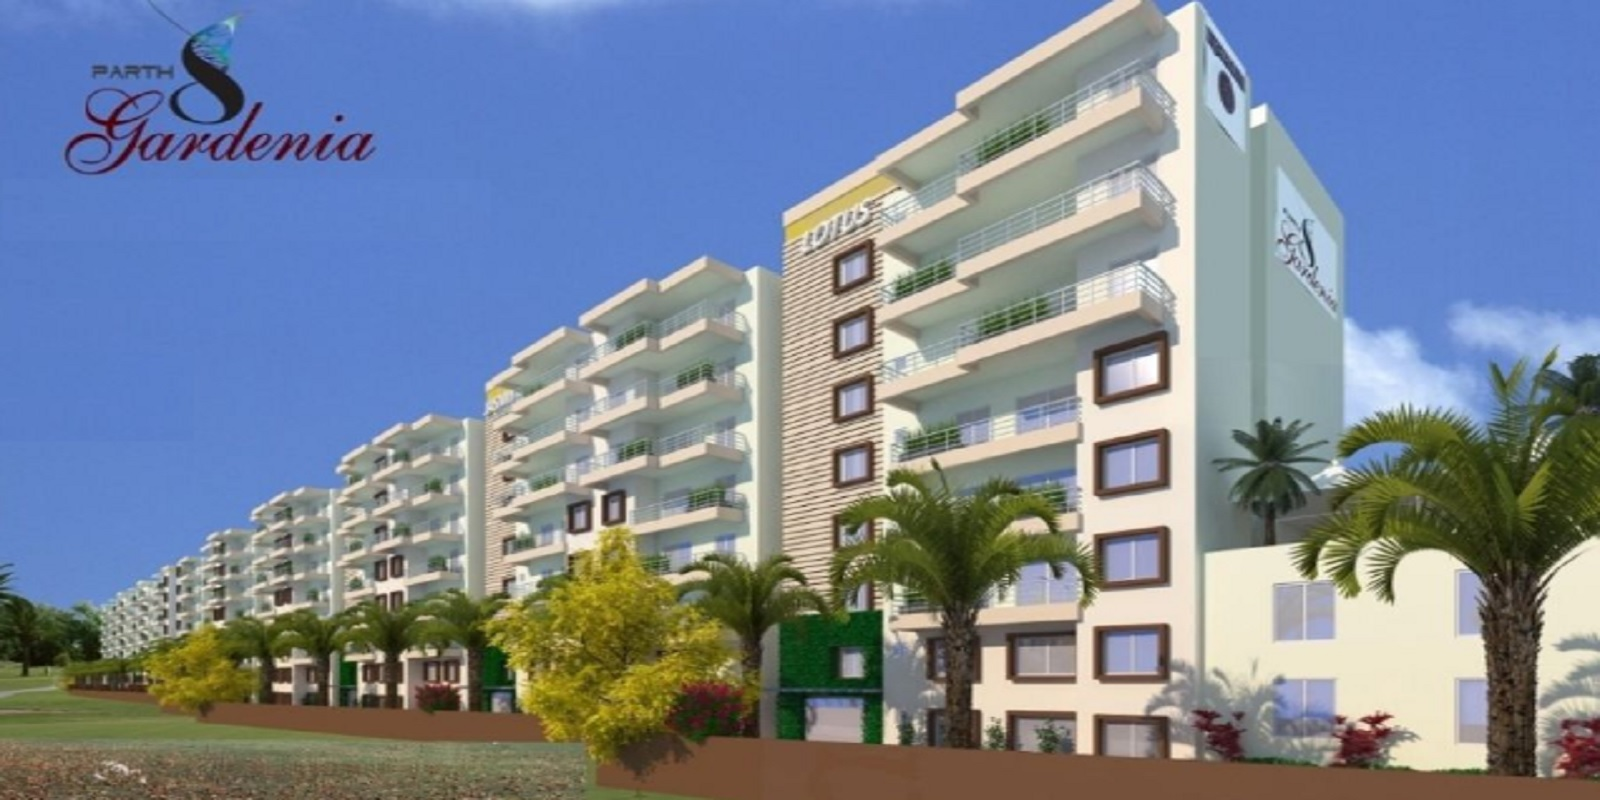 parth gardenia project large image2